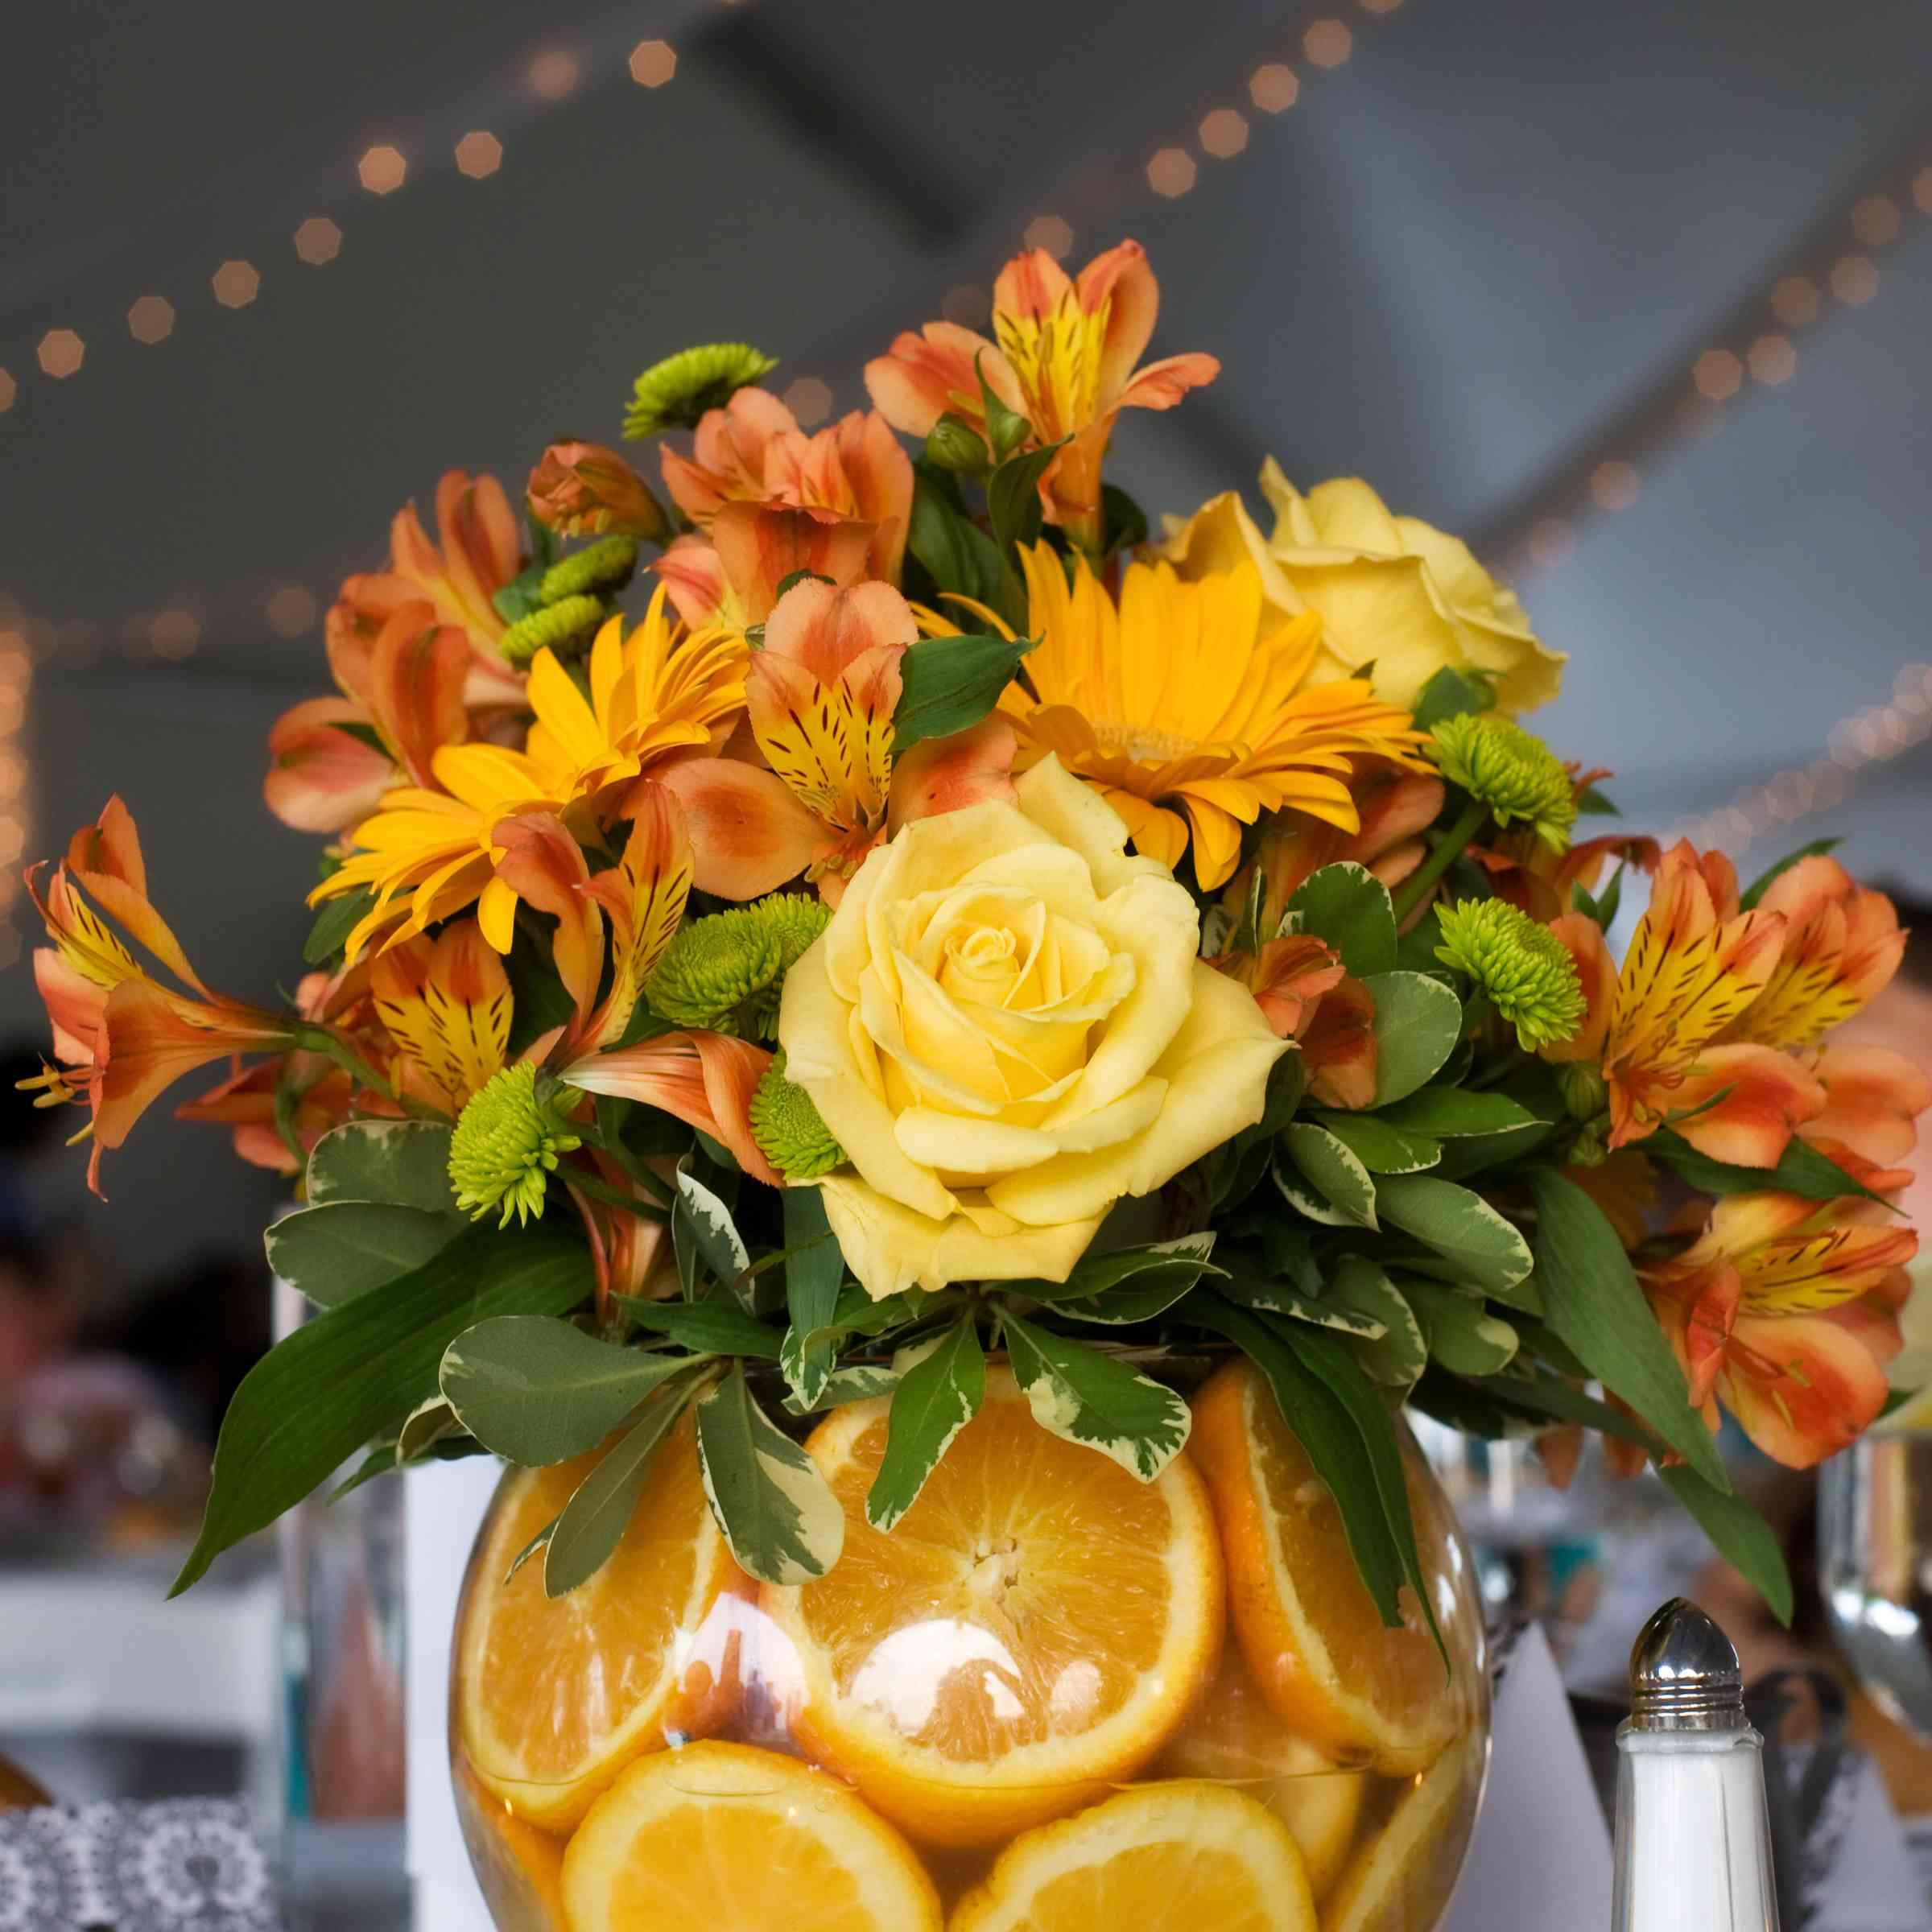 Orange slices with flowers as a centerpiece